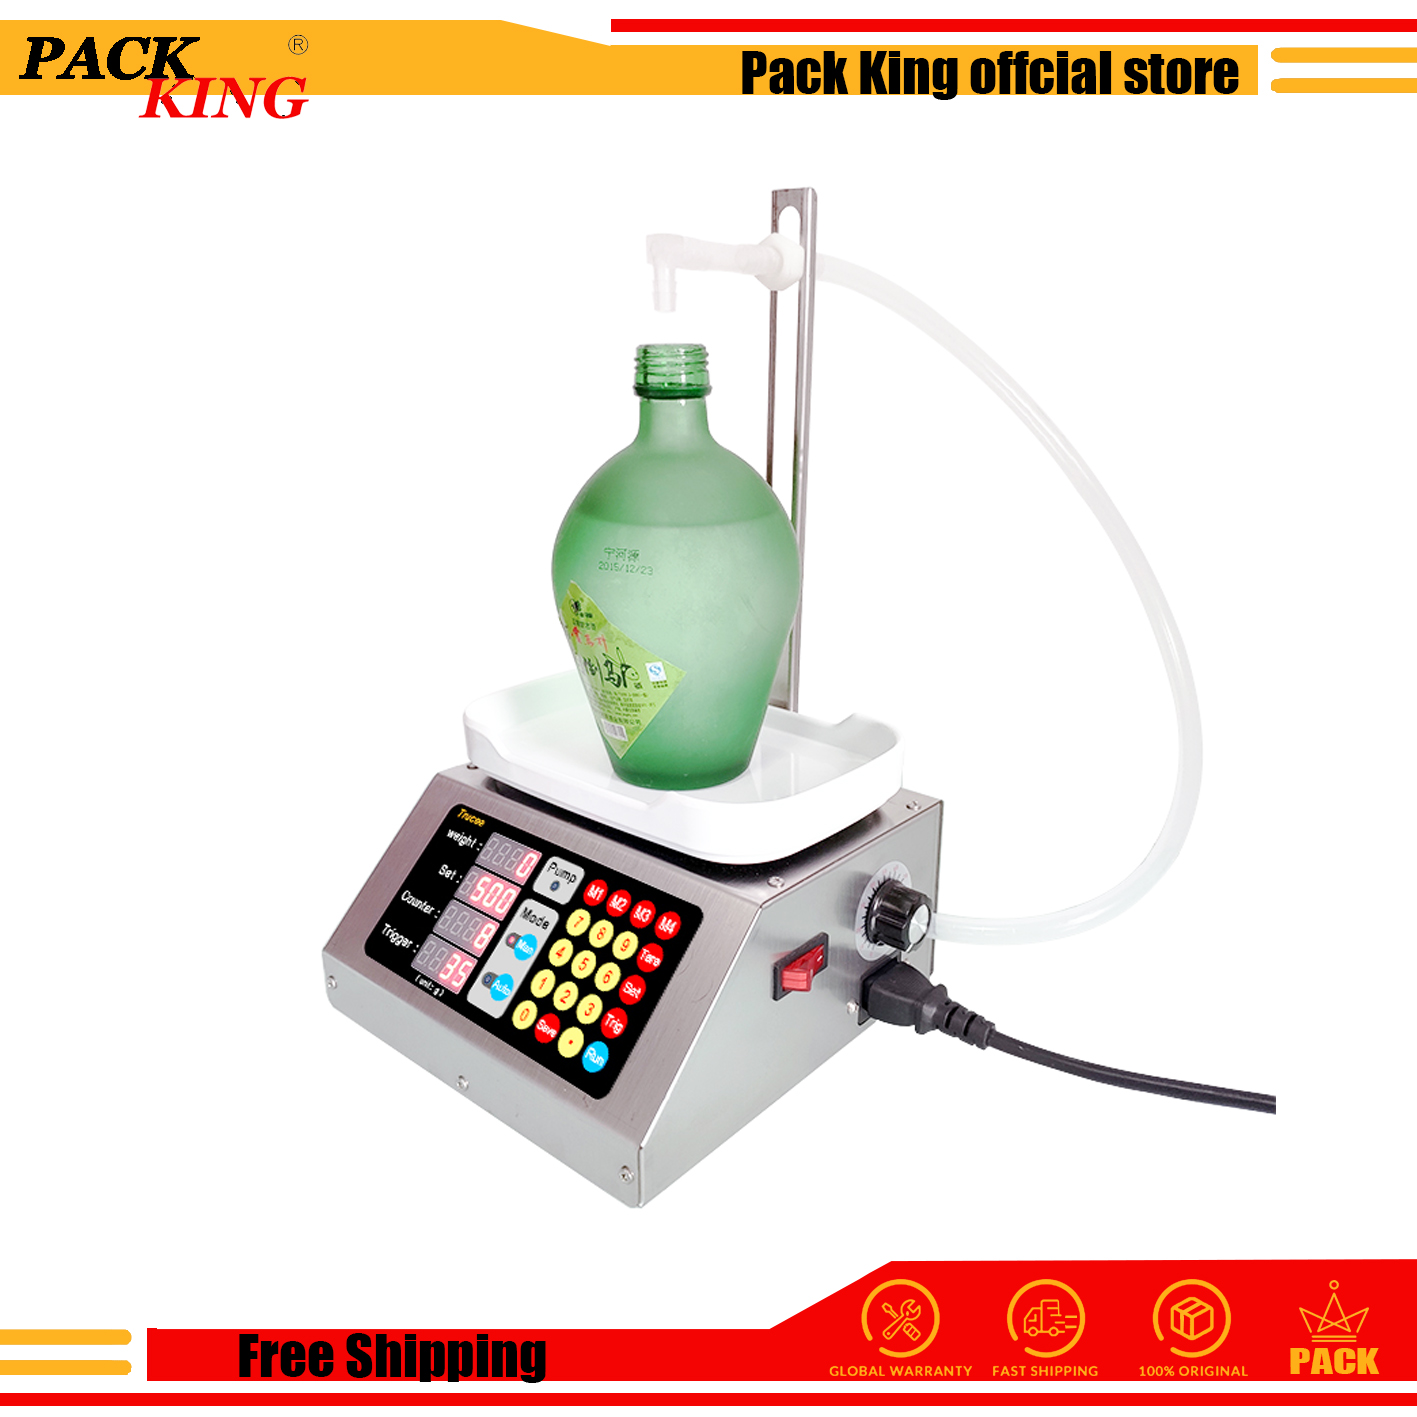 Weighing Diaphragm Pump Filling Machine Electronic Scale Liquid Filler Oil Water Drink Wine Juice 10ml-3000ml Free Shipping